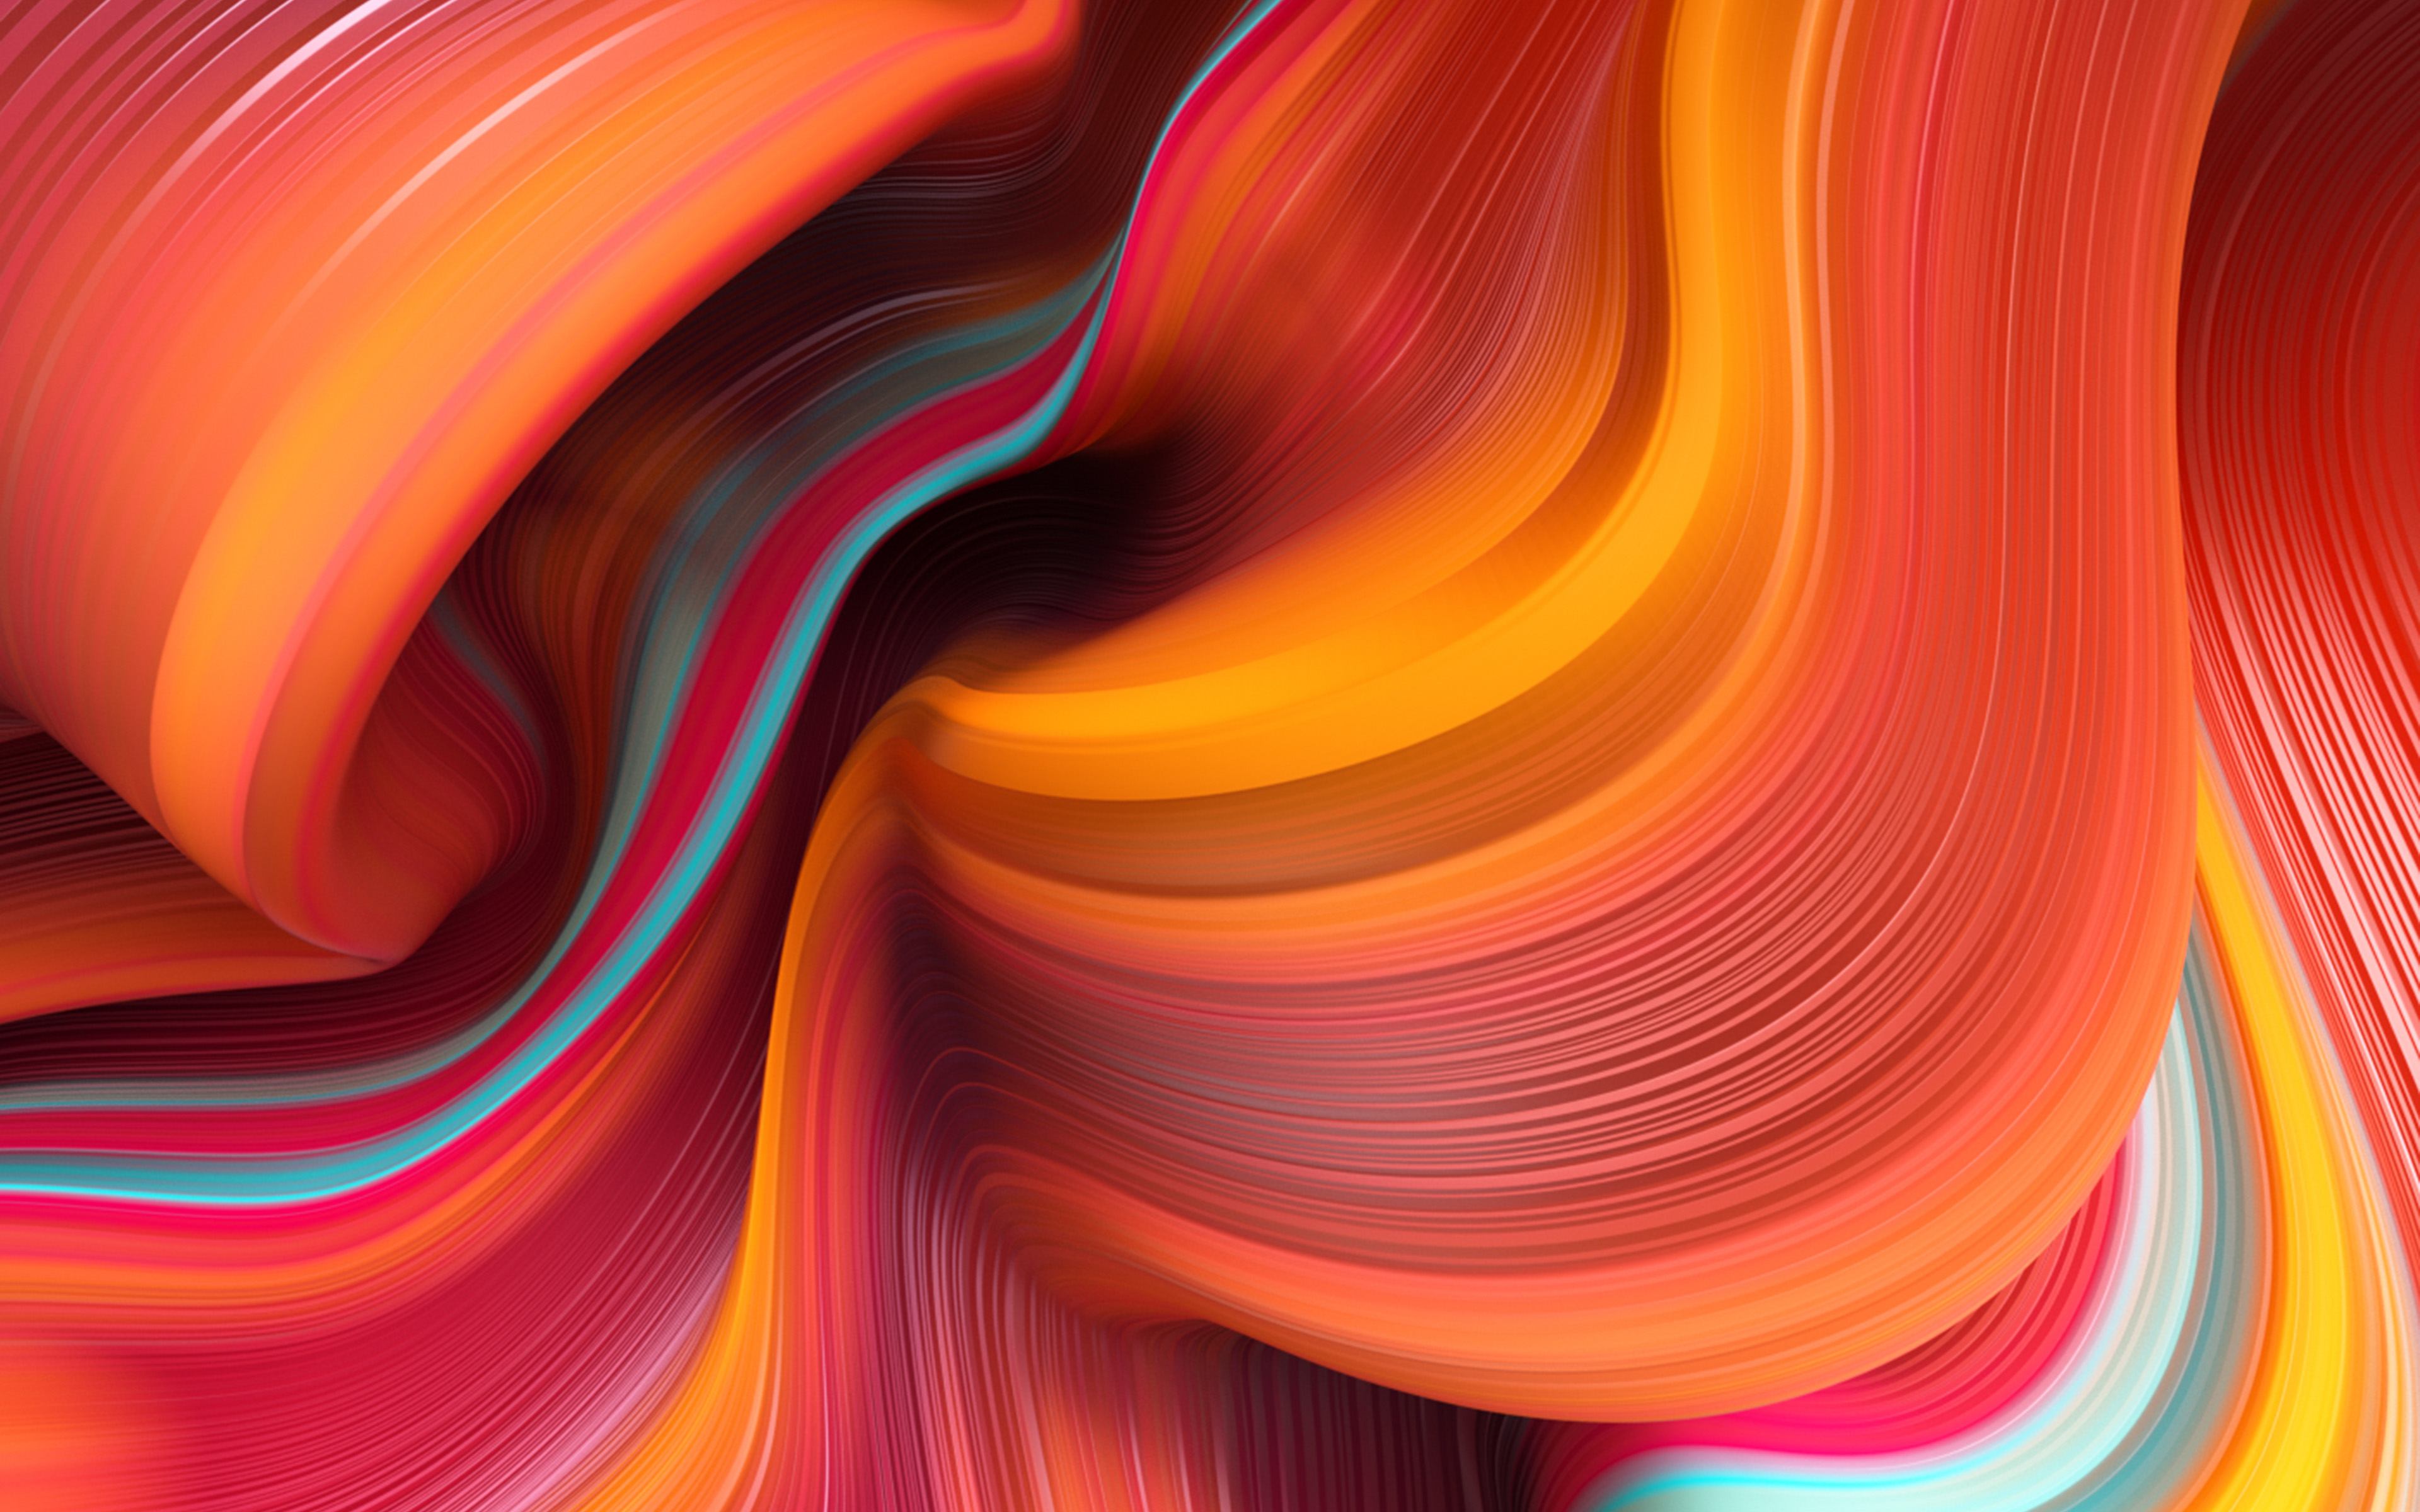 Wc41 Curve Dannyivan Line Abstract Pattern Background Red